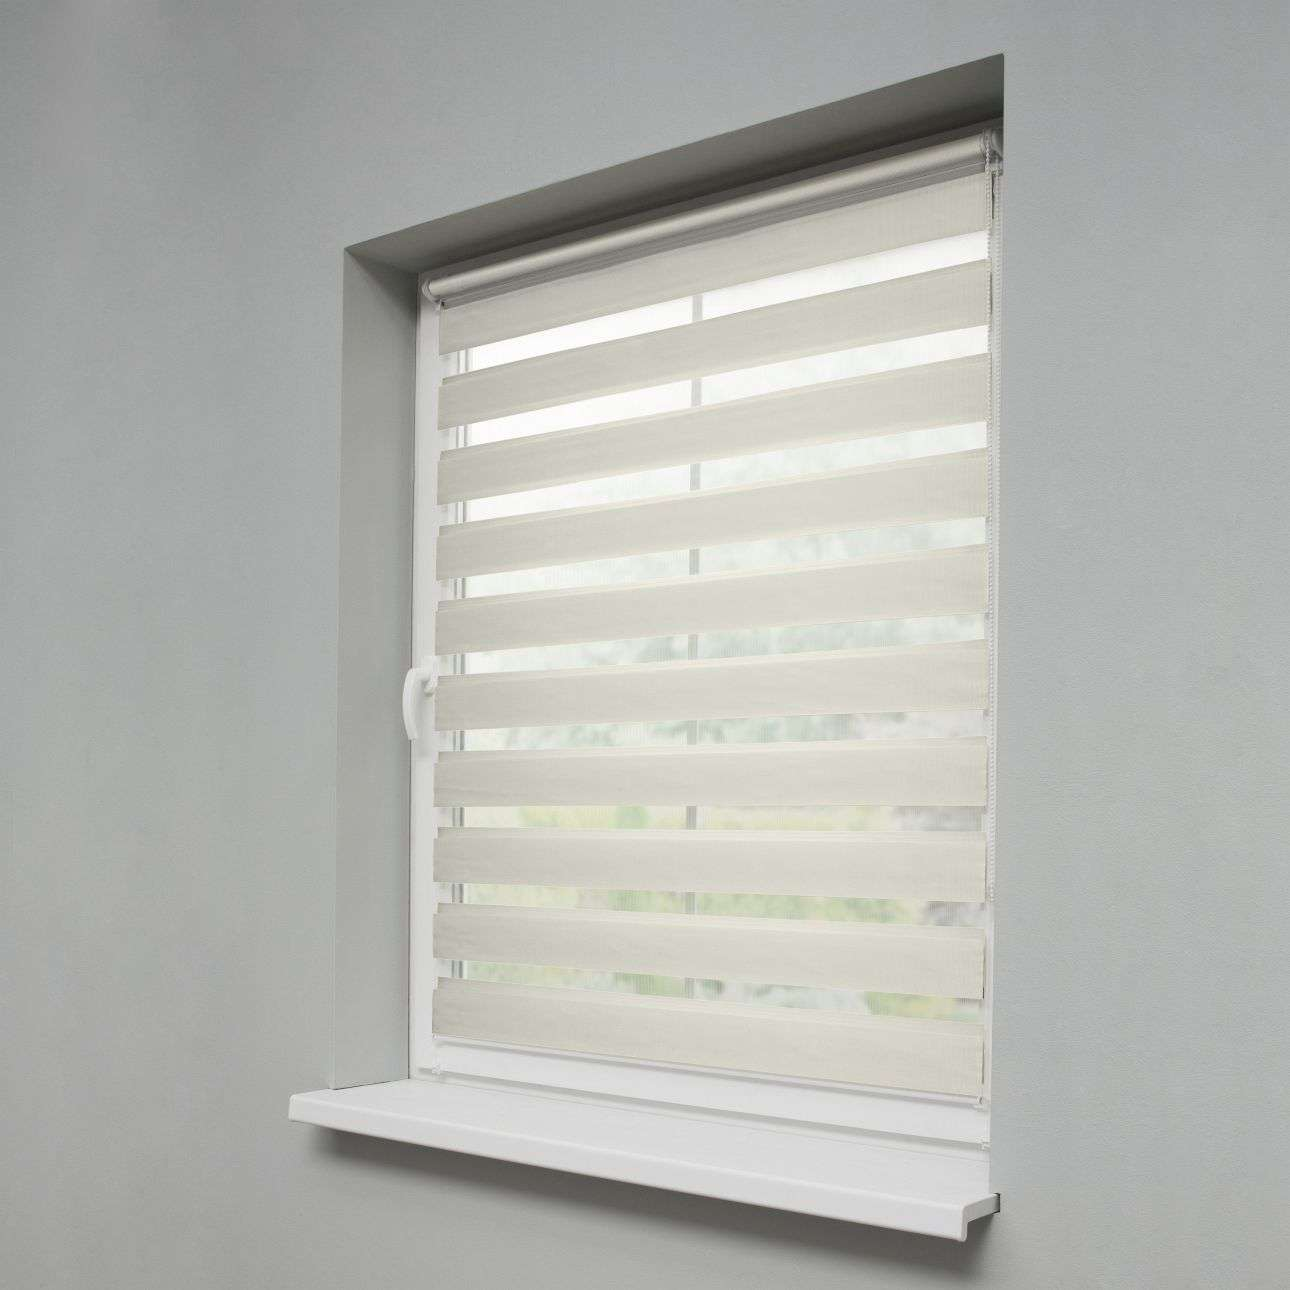 Mini Day & Night Roller Blind 38x150cm in collection Roller blinds Day & Night (Venetian blind), fabric: 0212